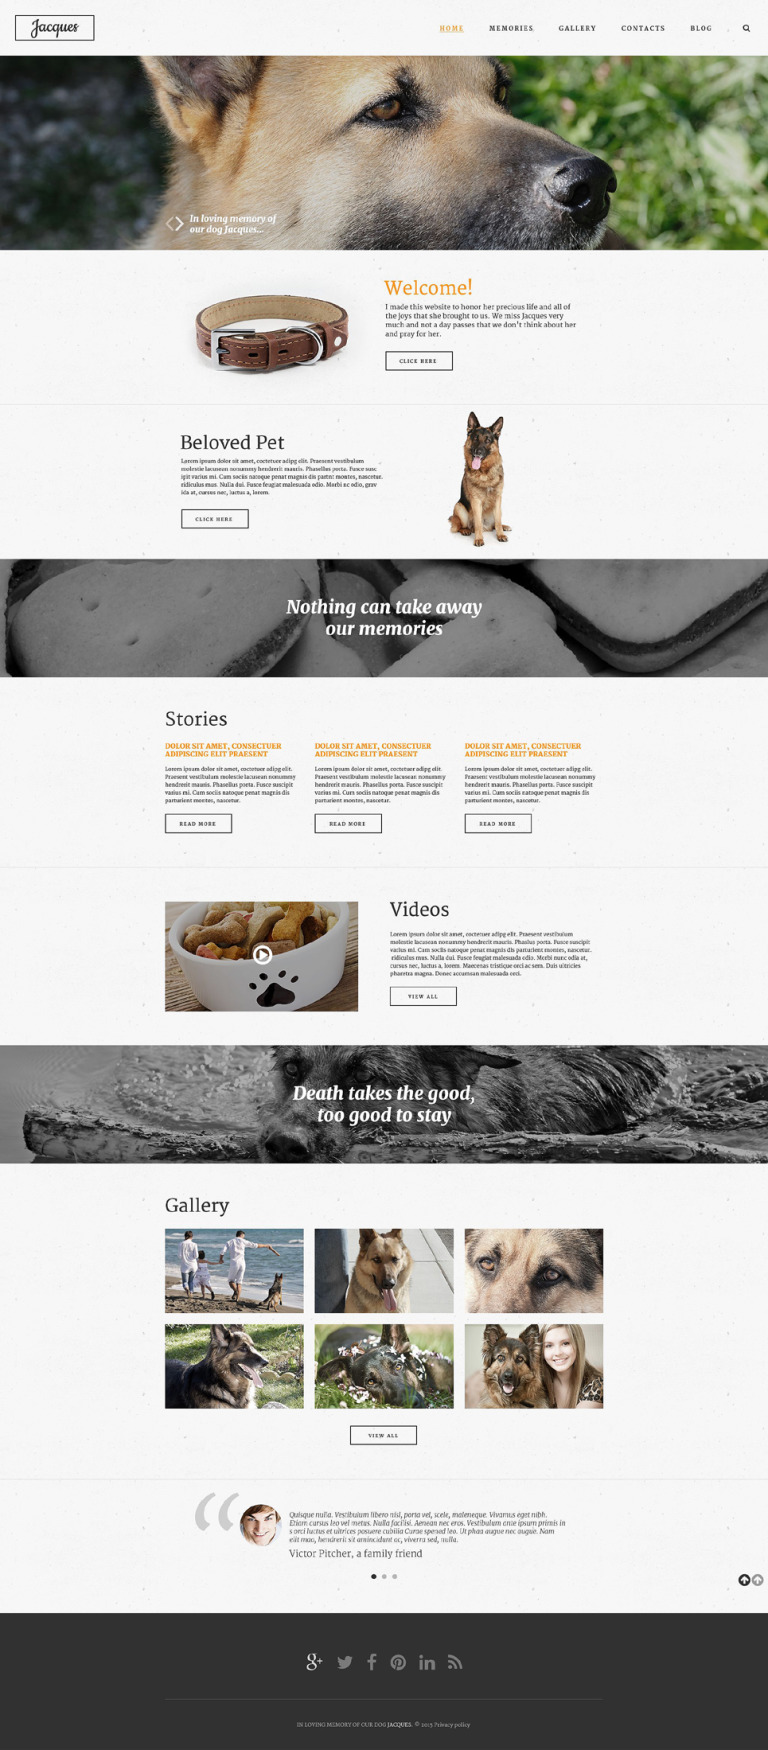 In Loving Memory Website Template New Screenshots BIG